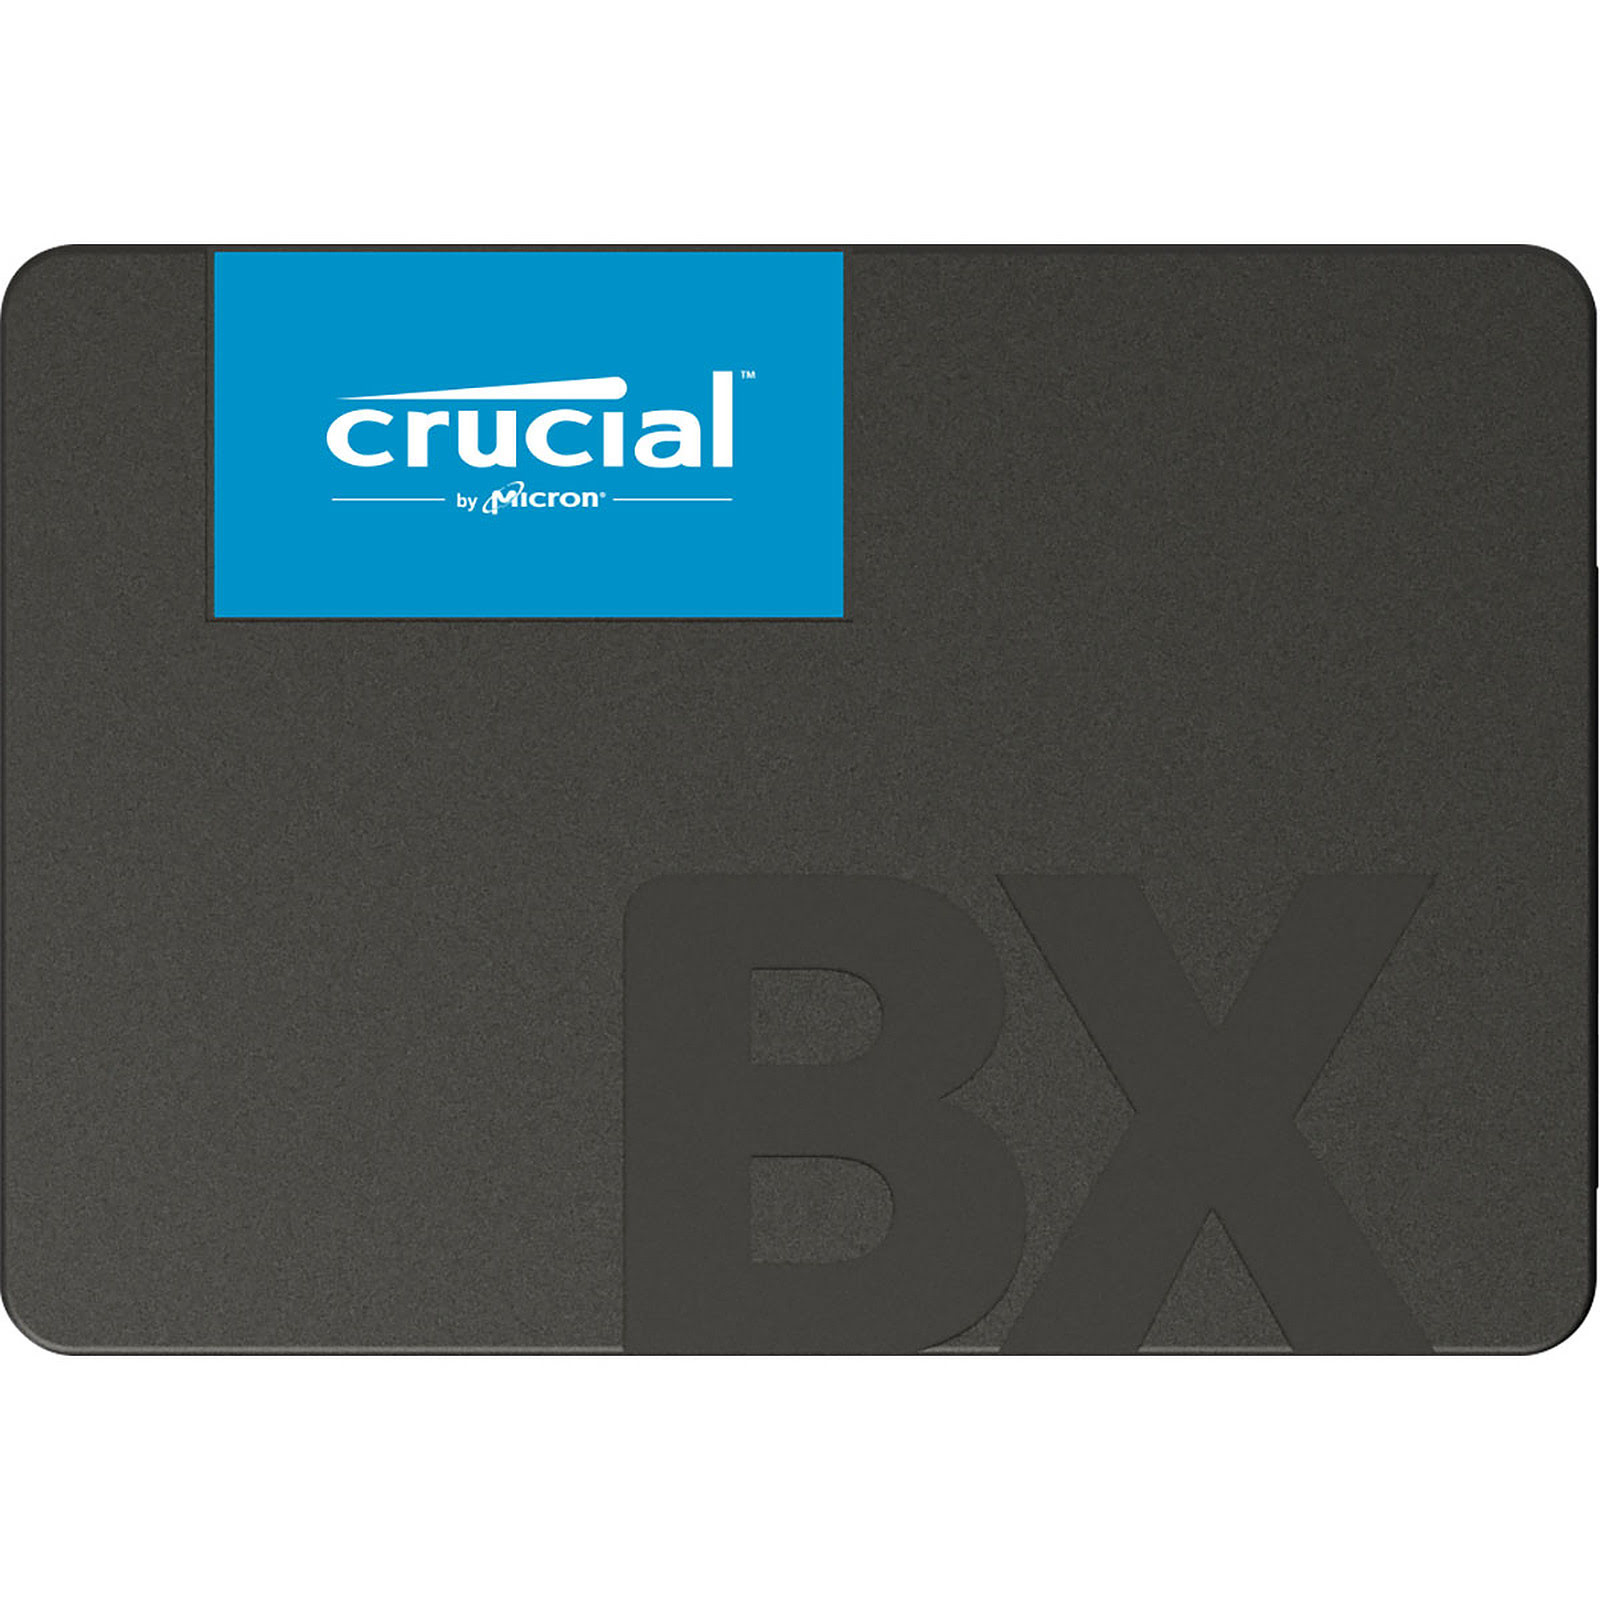 Crucial BX500 960Go-1To SATA III - Disque SSD Crucial - 2